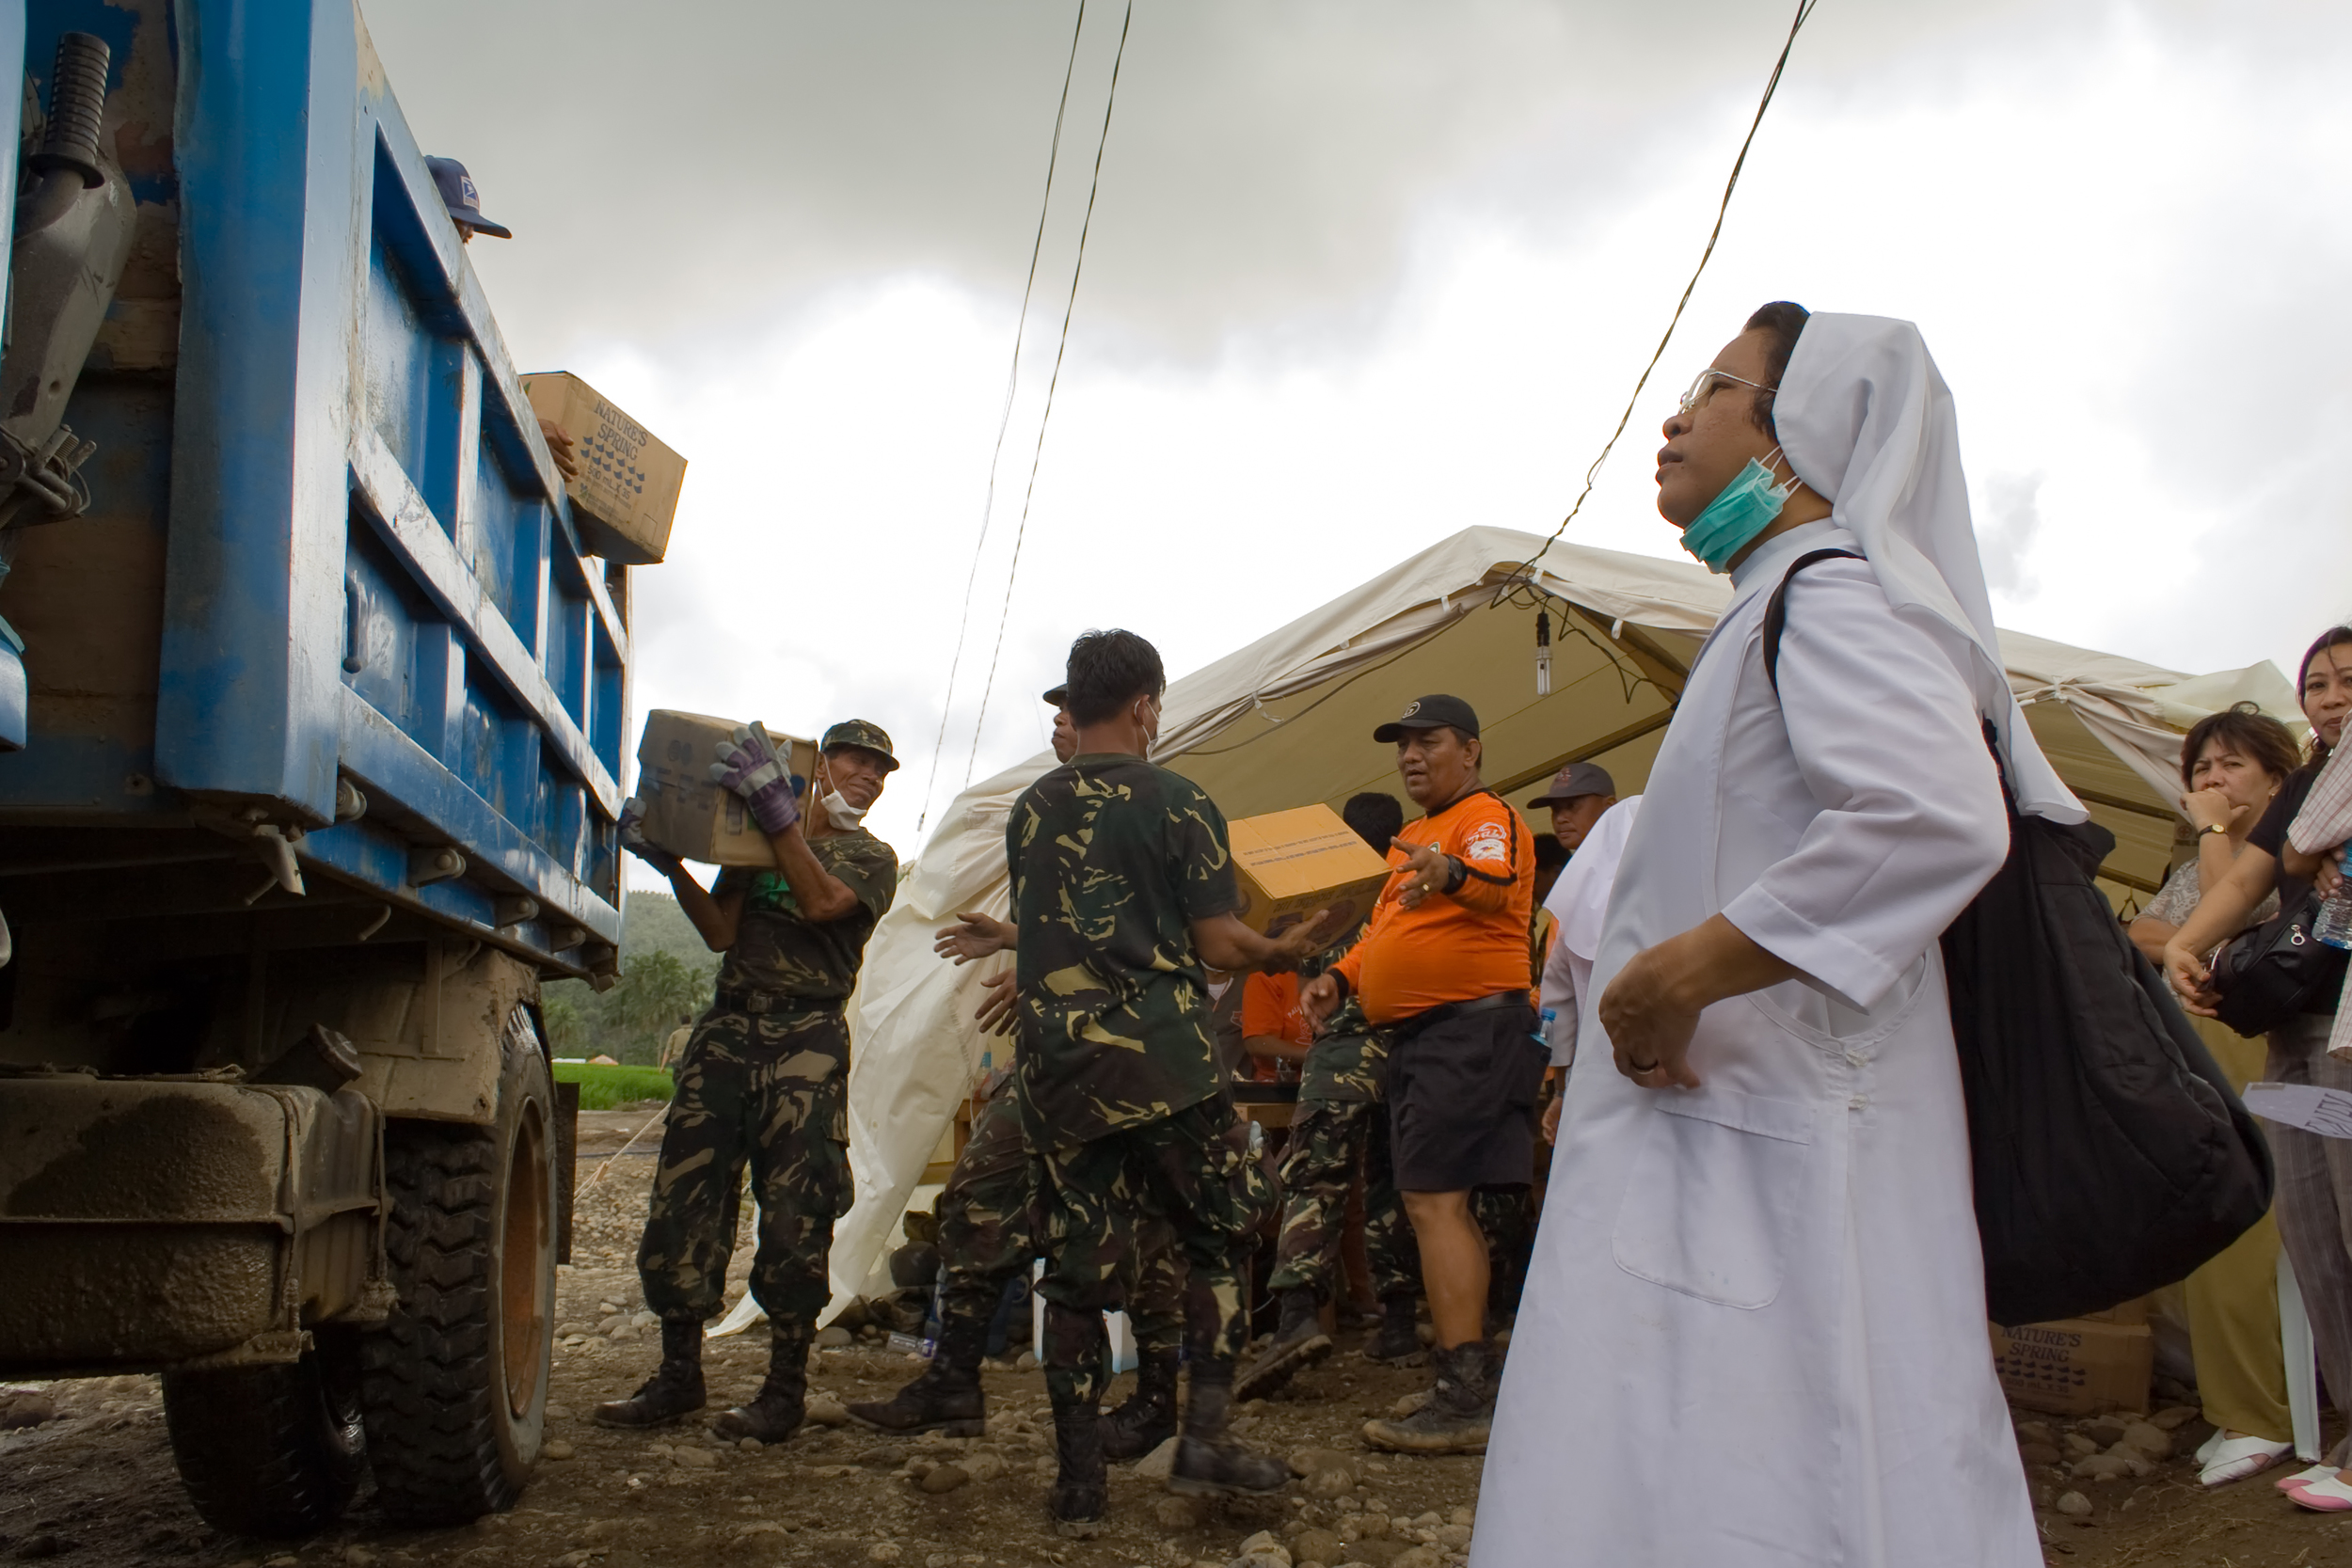 A nun watches as supplies are unloaded at the search operations area in Guinsaugon, Leyte, Philippines.